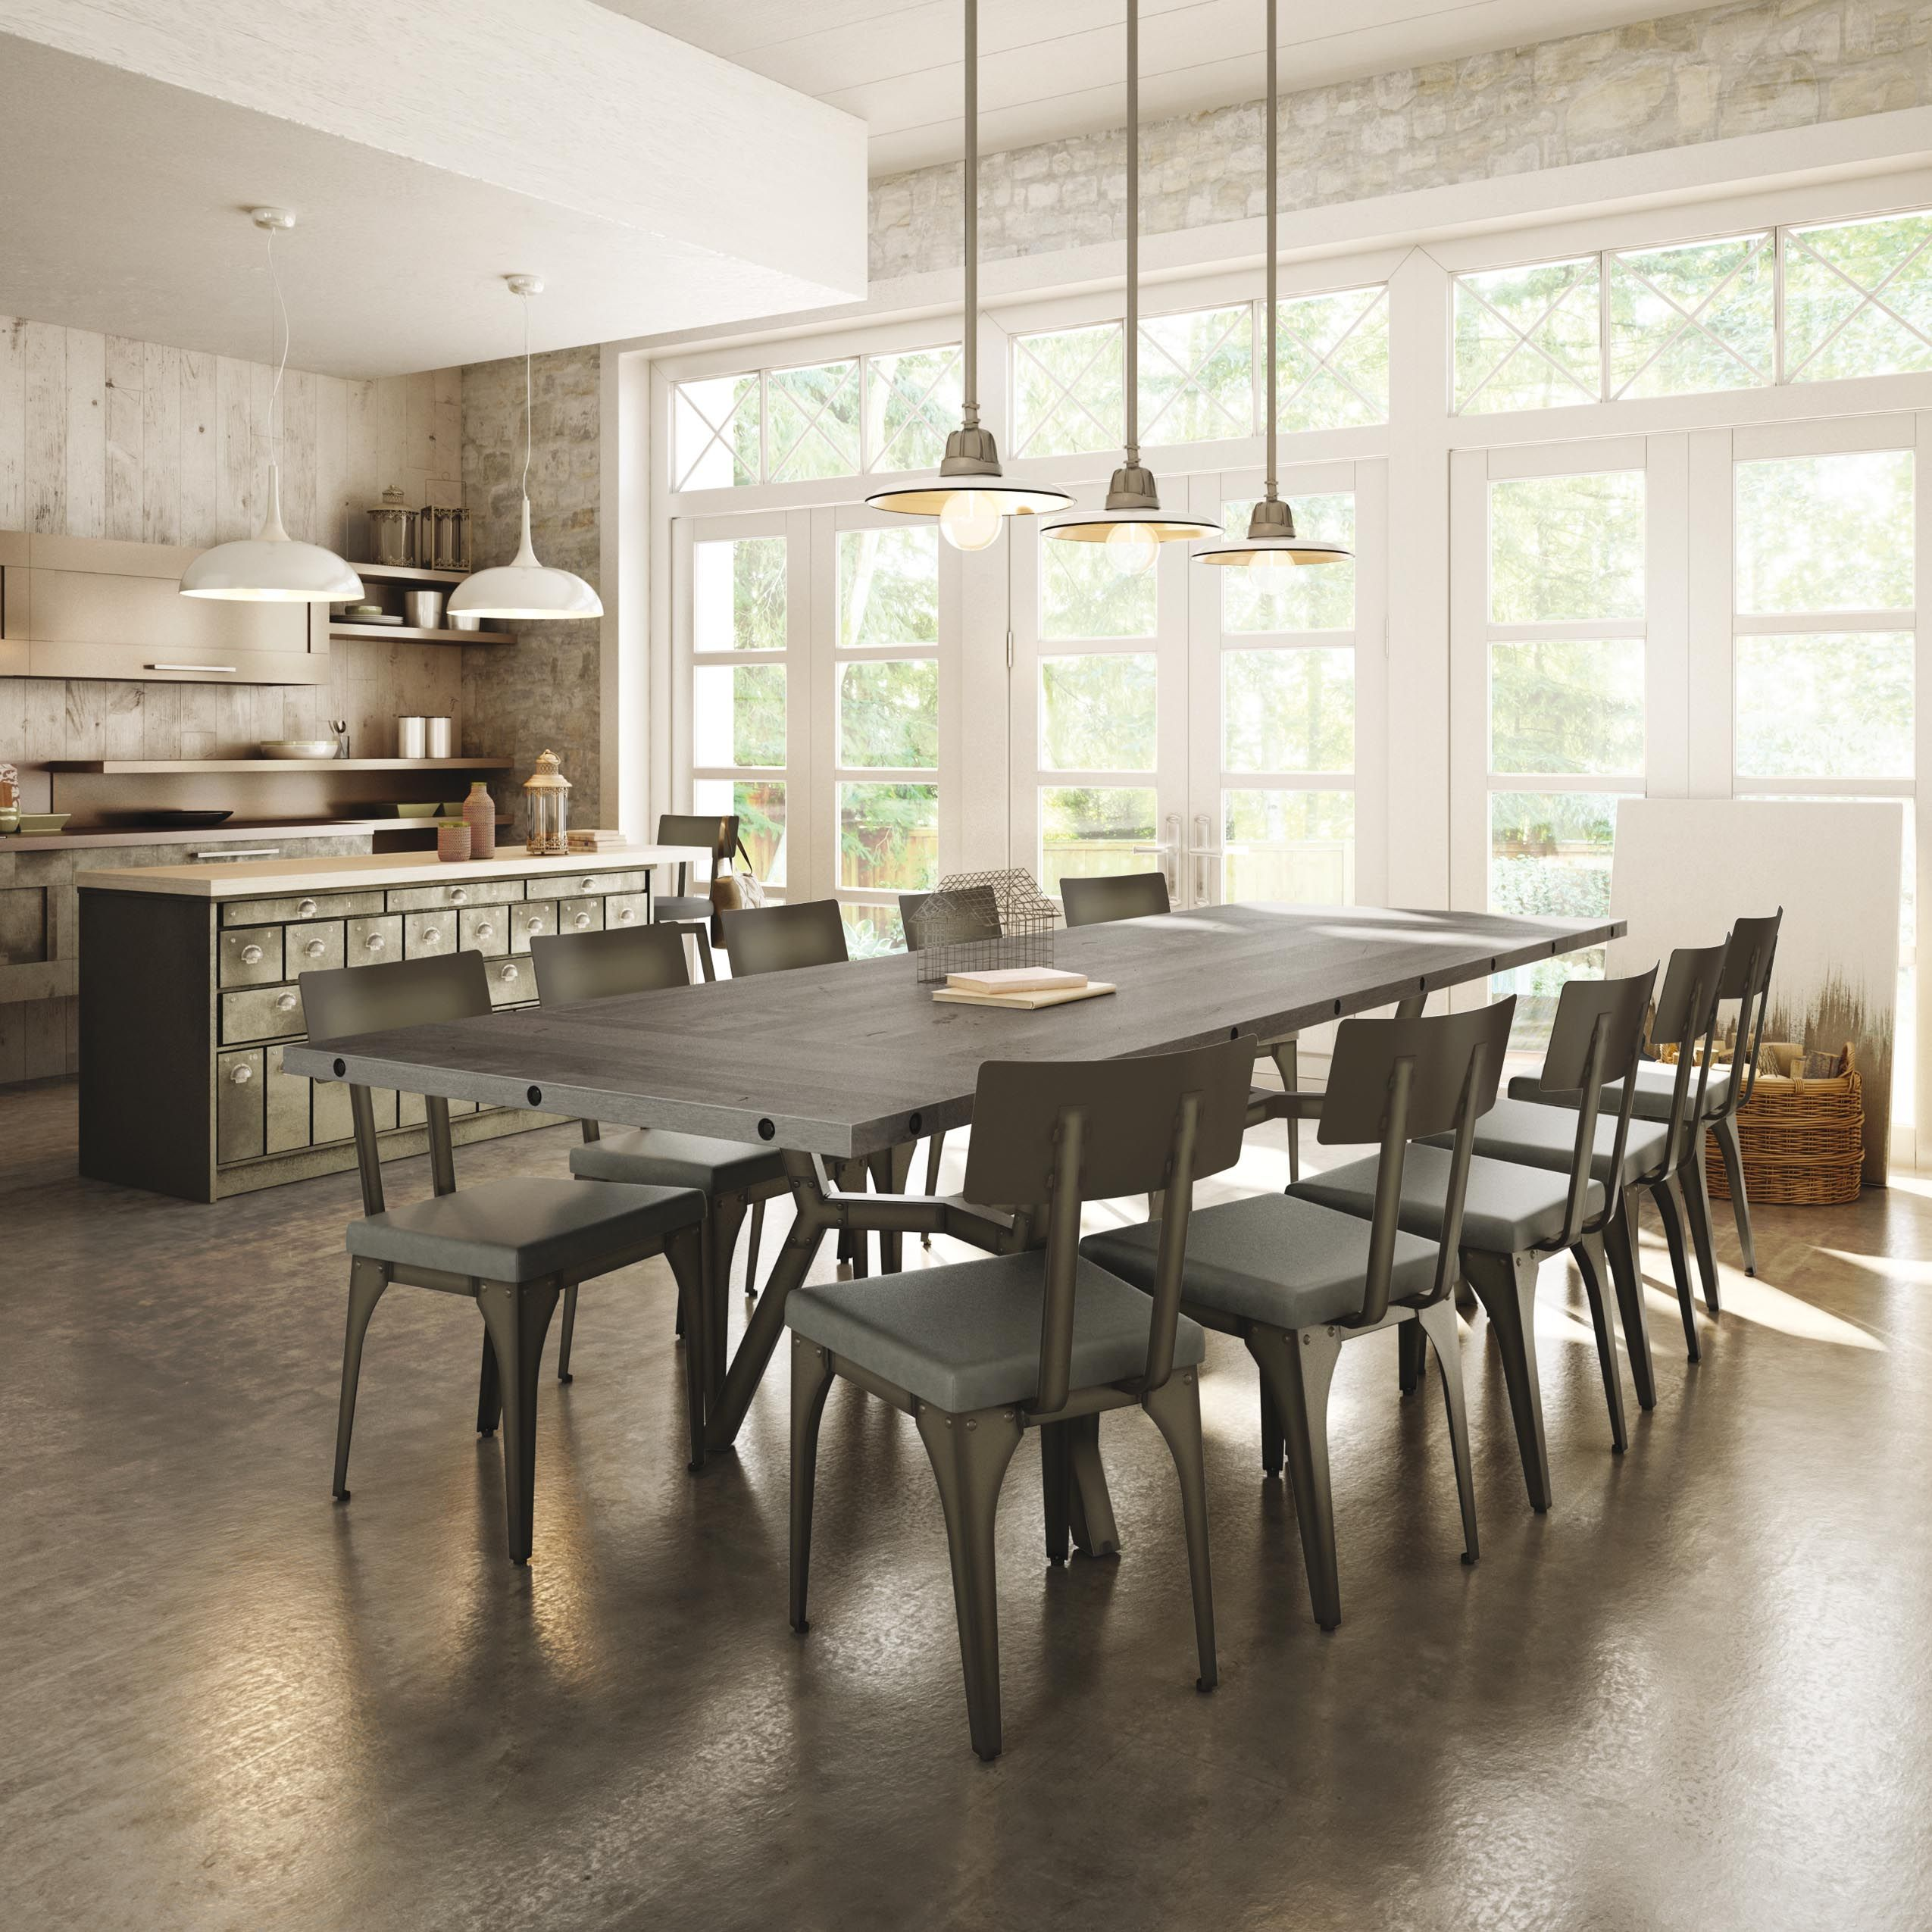 Amisco Southcross Table Base 50567 Architect Chair 30563 Furniture Kitchen Industrial Collect